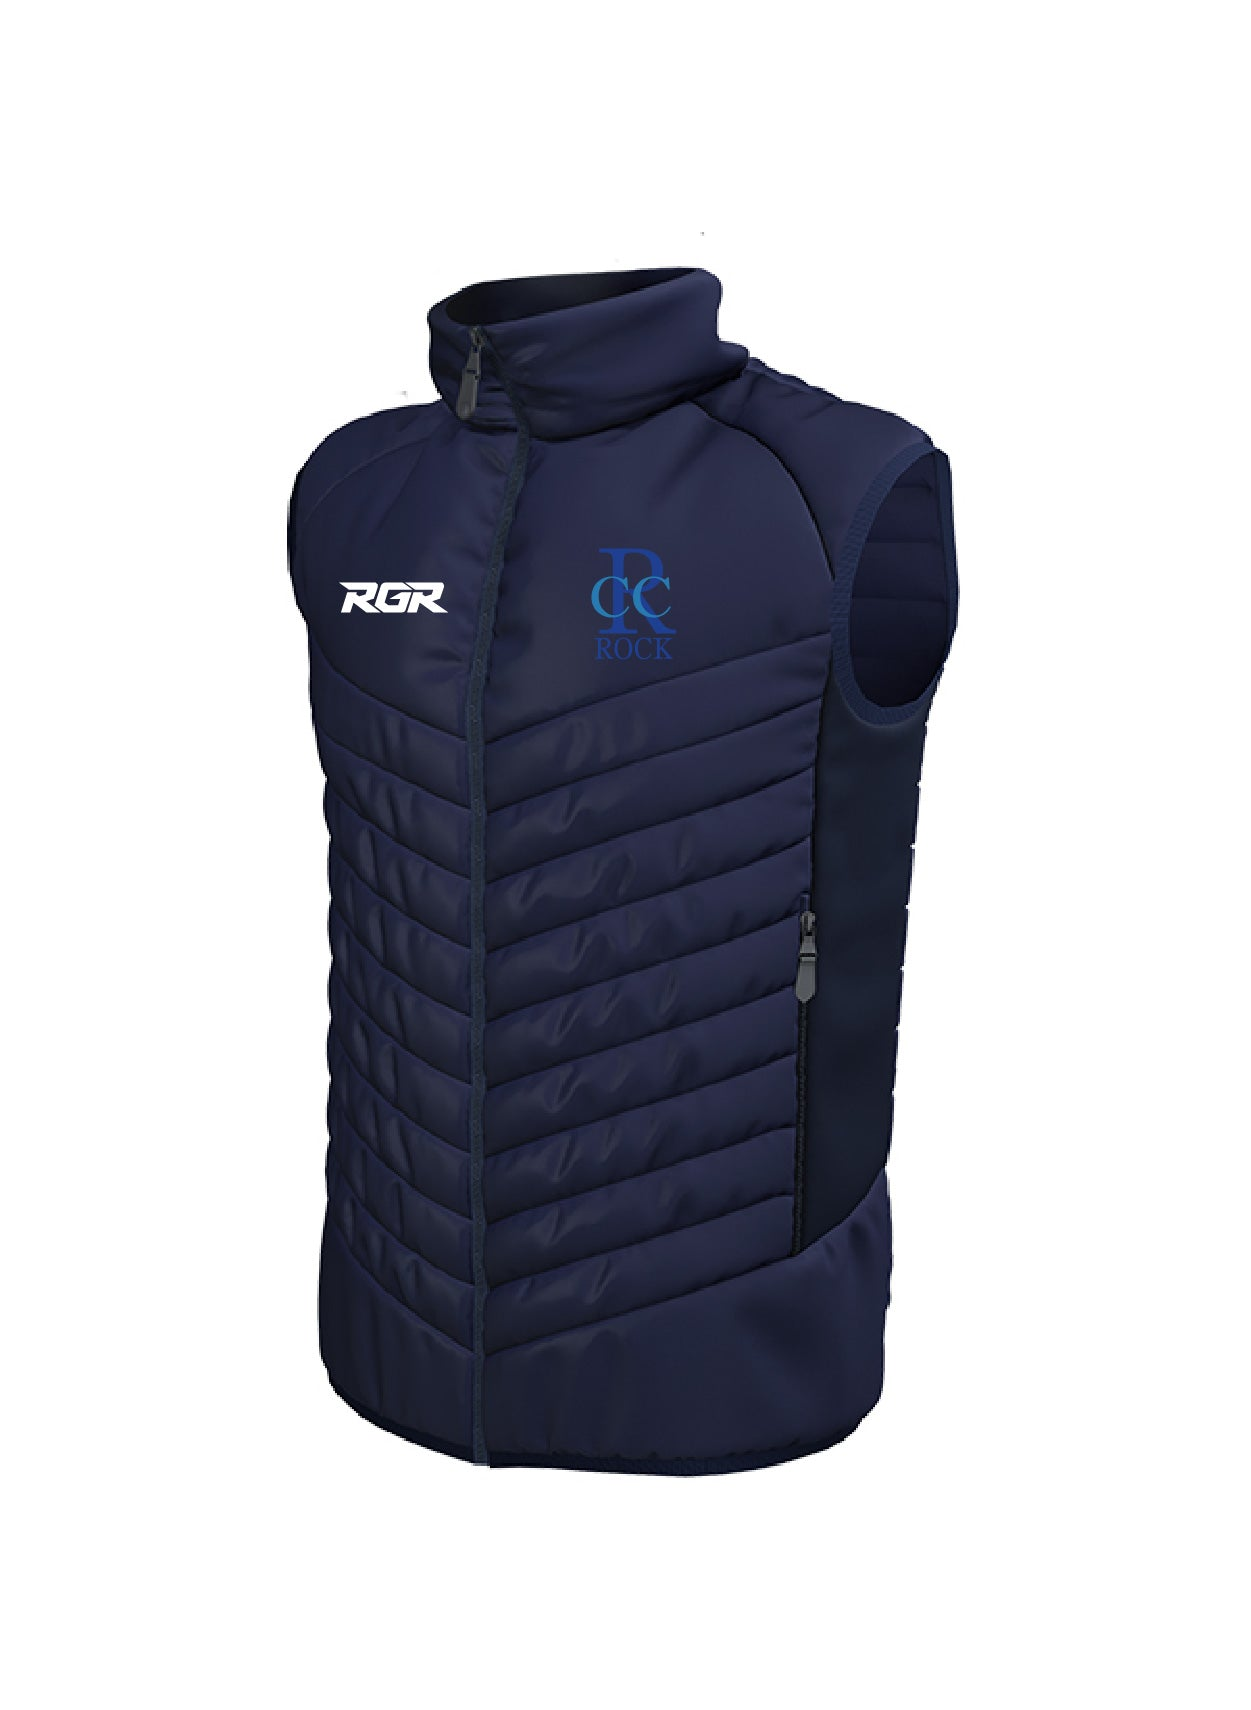 Rock CC RGR Gilet Senior